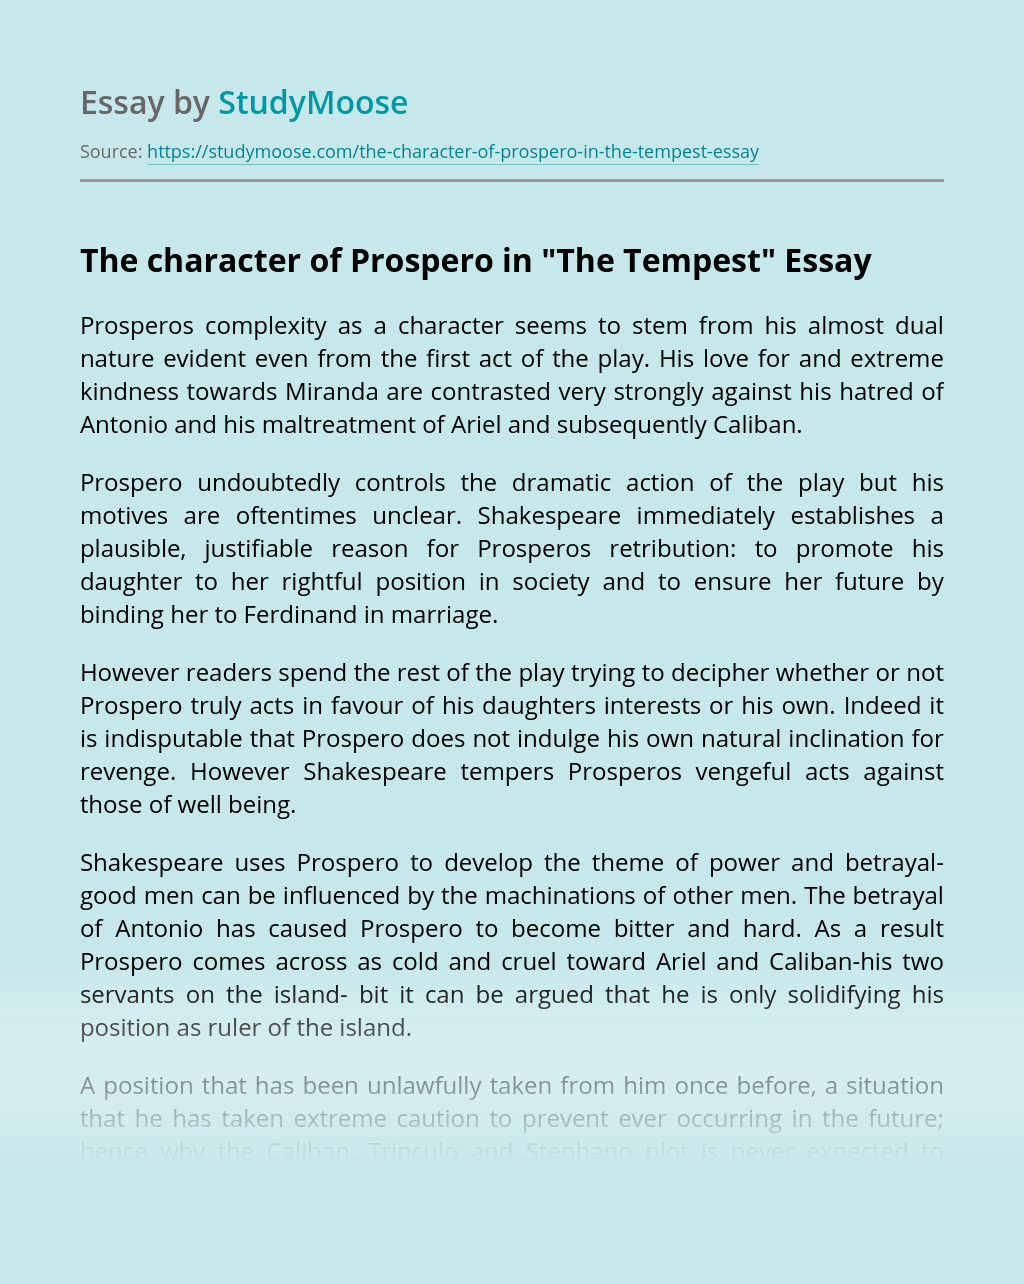 """The character of Prospero in """"The Tempest"""""""